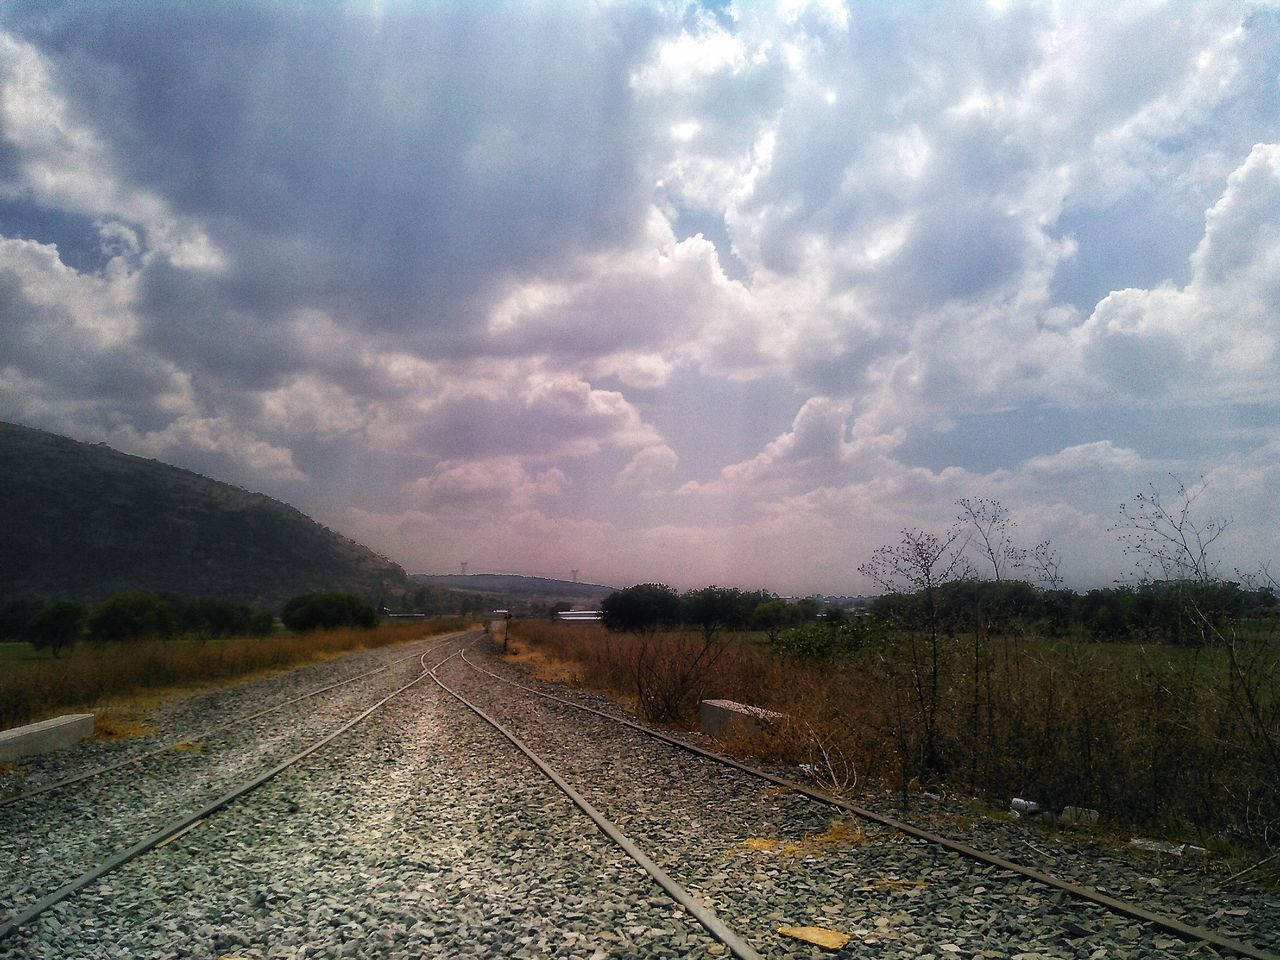 Pulled apart | Apartado | Paragraphe | Absatz. Sky Cloud - Sky Nature No People Beauty In Nature Agriculture Outdoors Water Scenics Tree Day Road Train Exploring First Eyeem Photo Mexico Old Landscapes Agriculture Cityscape Paths Train Tracks Beautiful Nature Tree